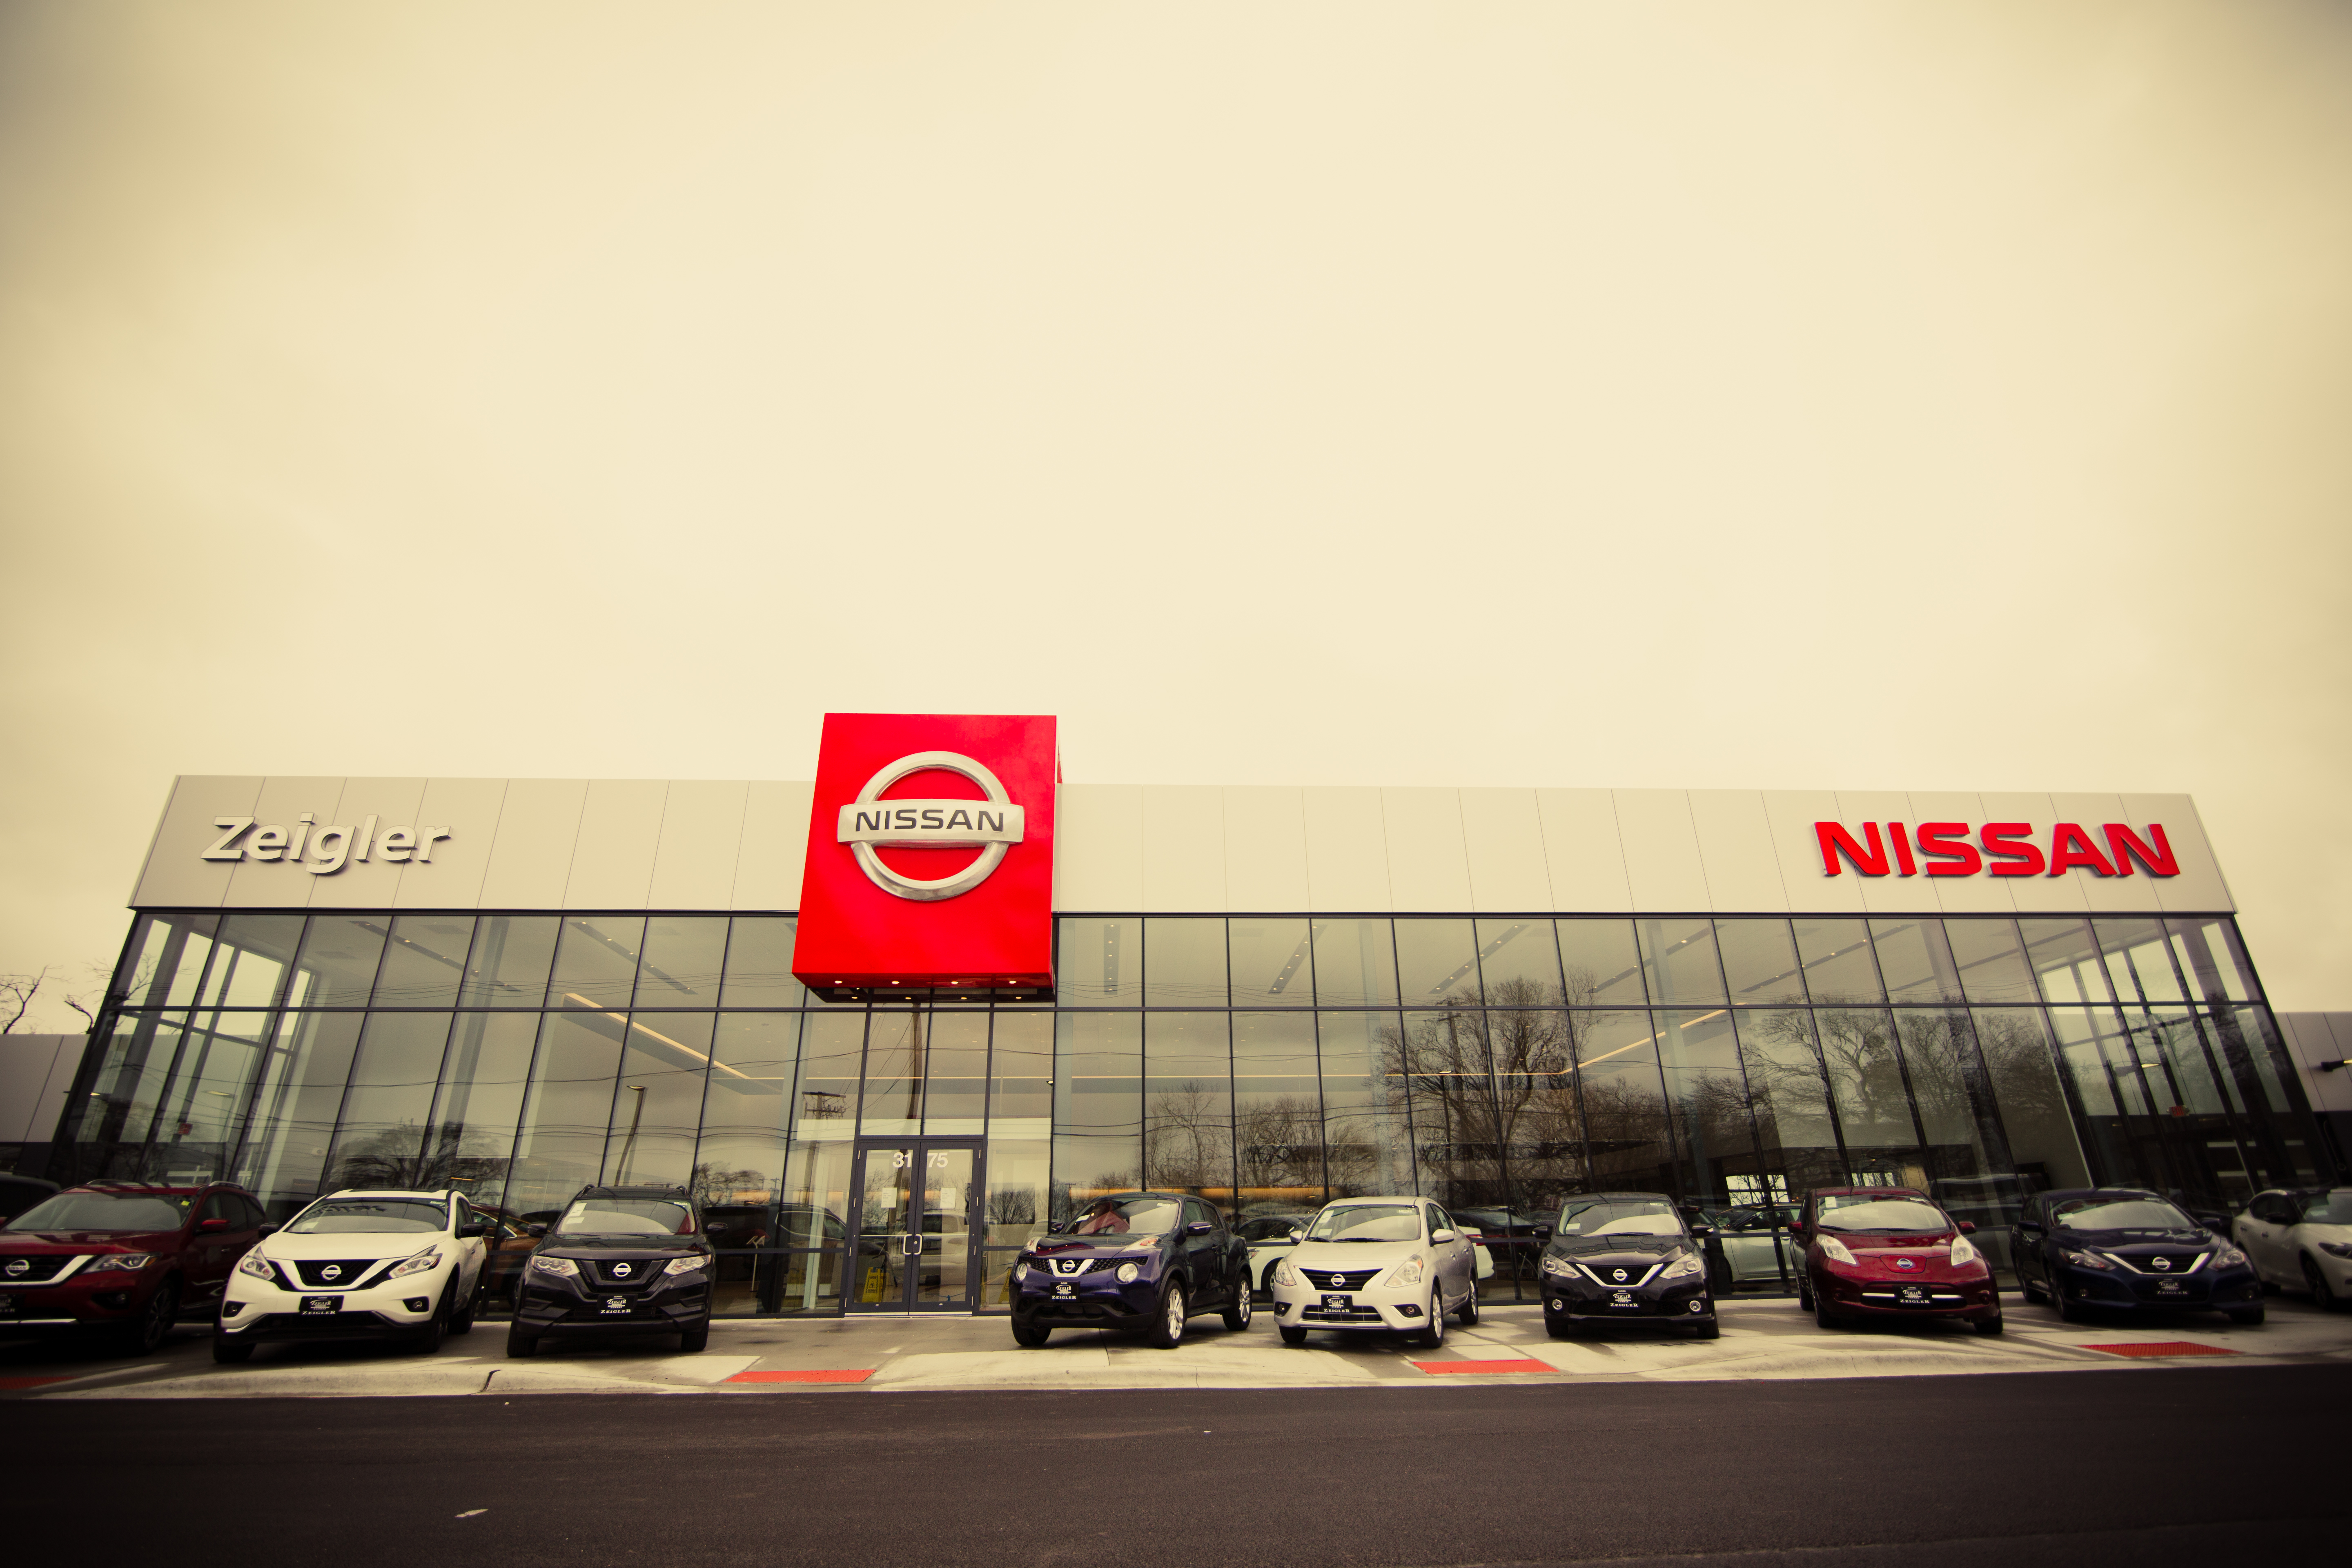 Nissan 2.0 build good for customers and business at Zeigler Automotive Group